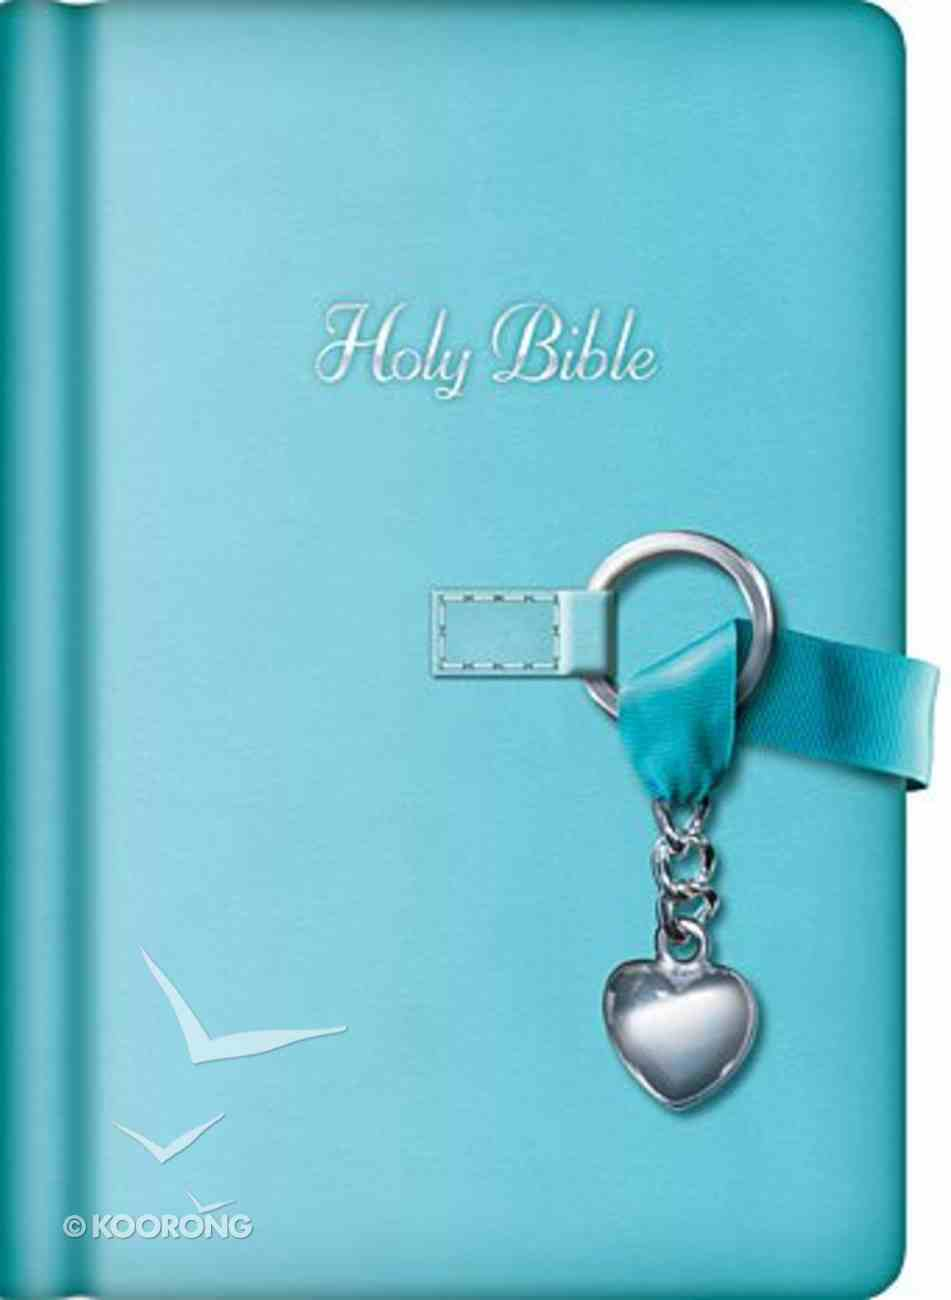 NKJV Simply Charming Blue With Silver Charm (Red Letter Edition) Premium Imitation Leather